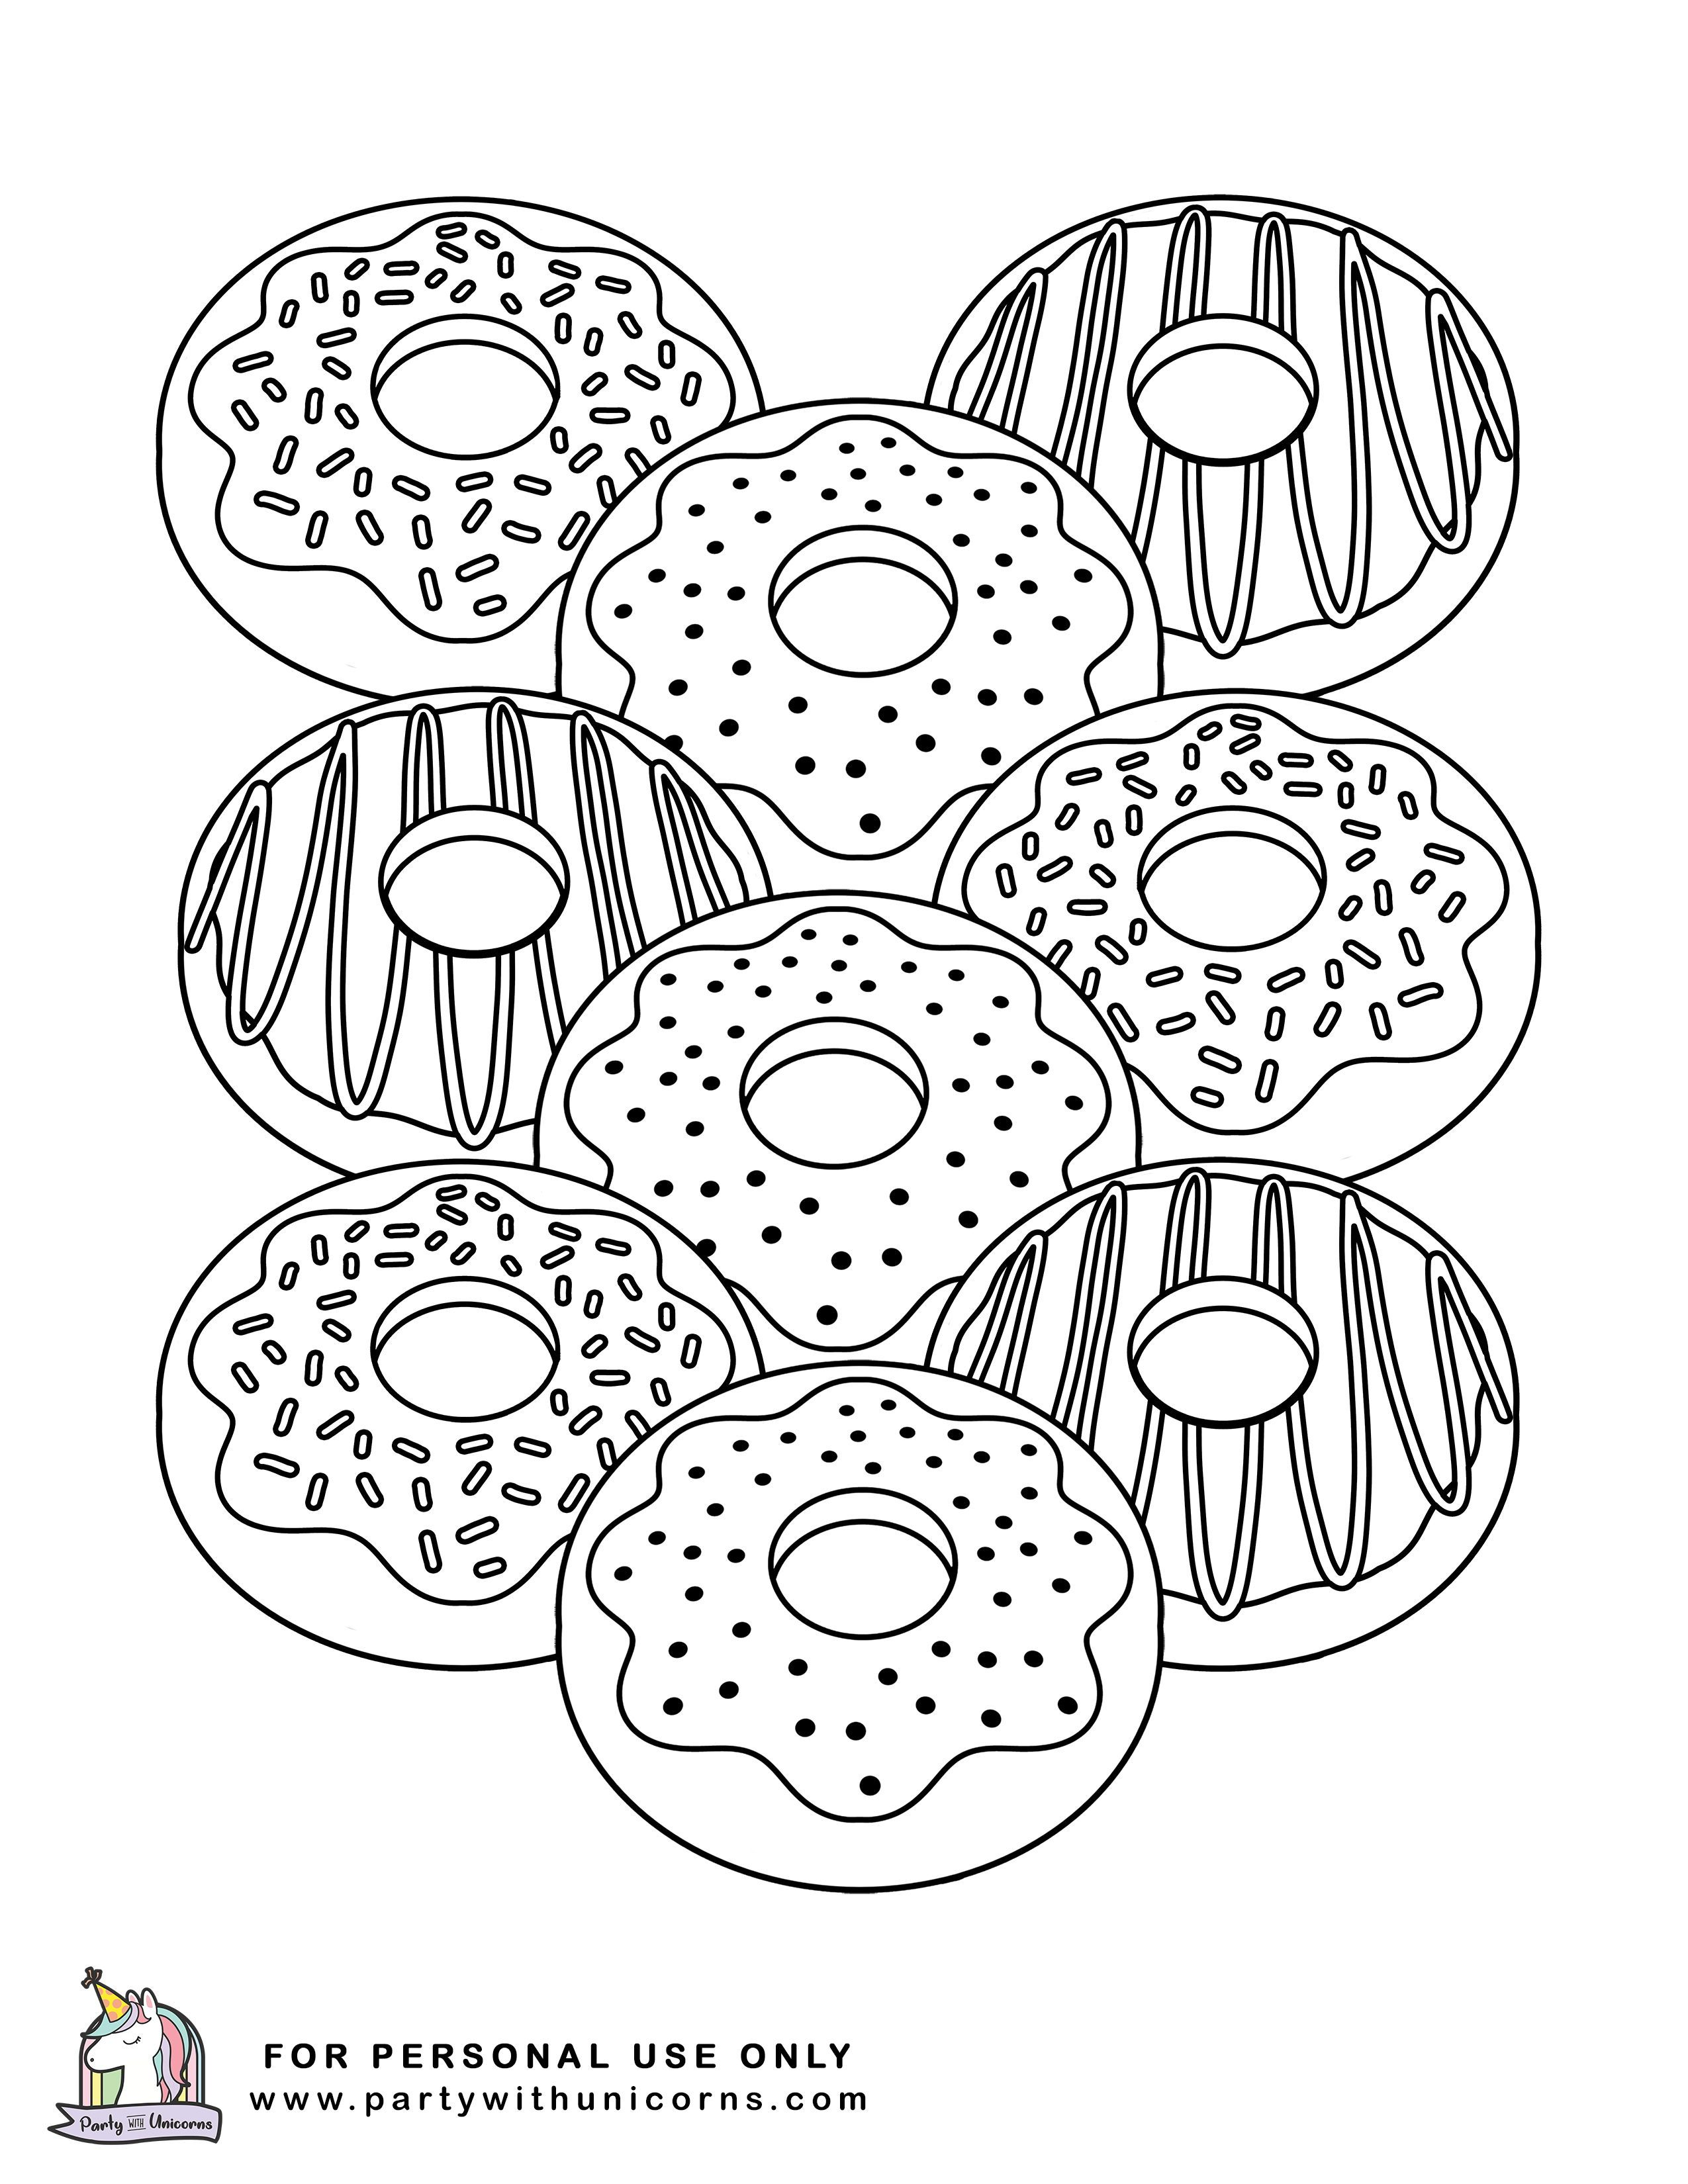 10 Donut Coloring Pages Free Download In 2020 Donut Coloring Page Coloring Pages Unicorn Coloring Pages